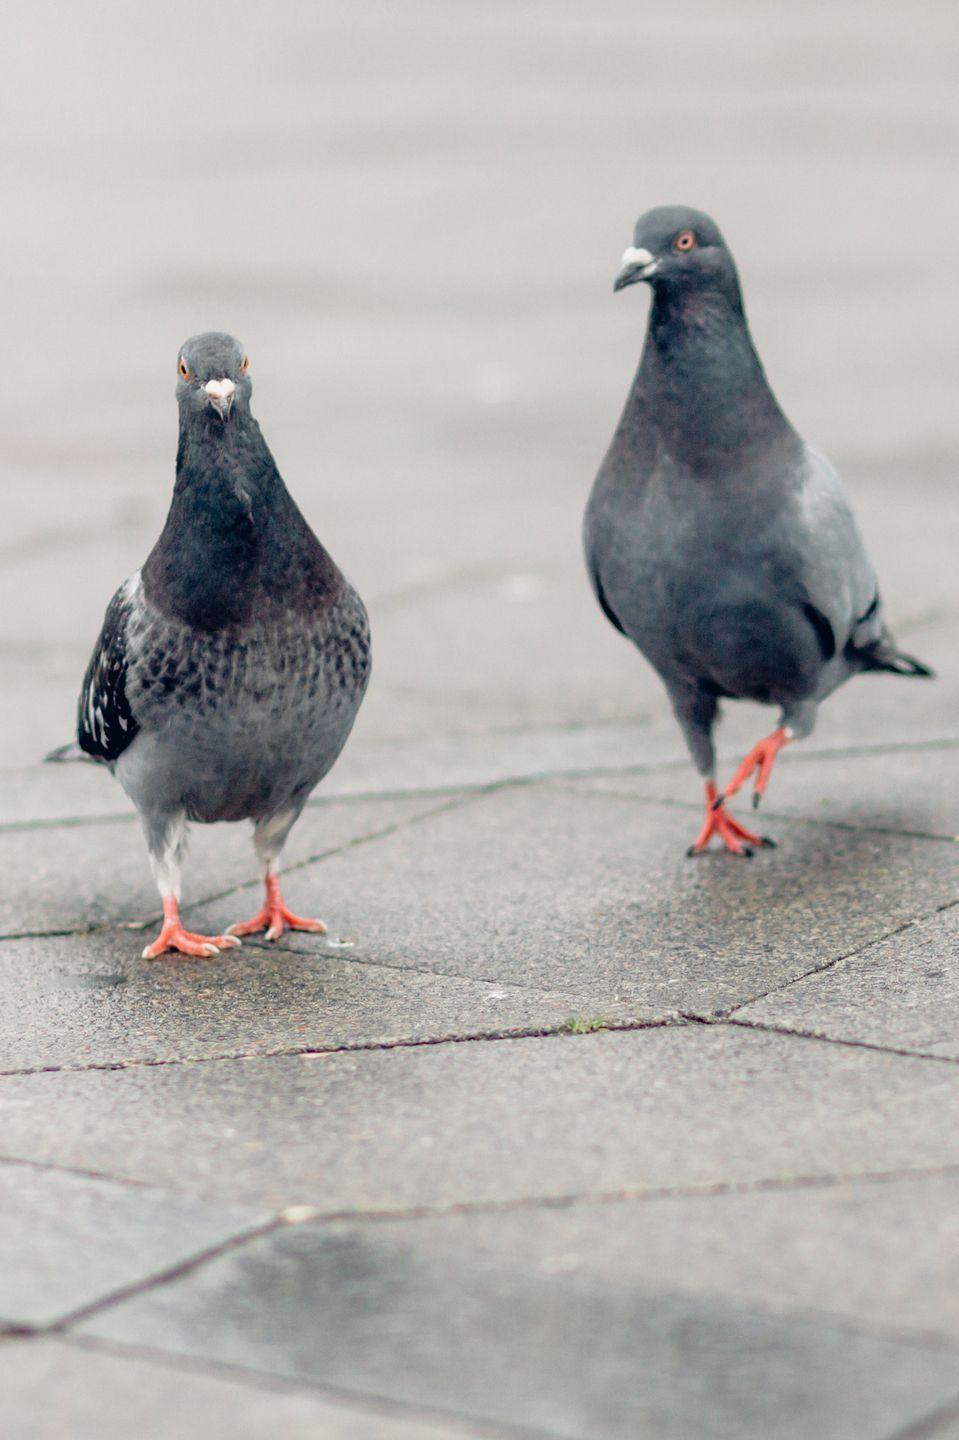 <p>Male pigeons help to incubate the eggs laid by their female partners from mid-morning to late afternoon, while the females take over in late afternoon and overnight to mid-morning. Both parents (who mate for life) help feed their young when they're born by regurgitating a milky liquid.</p>